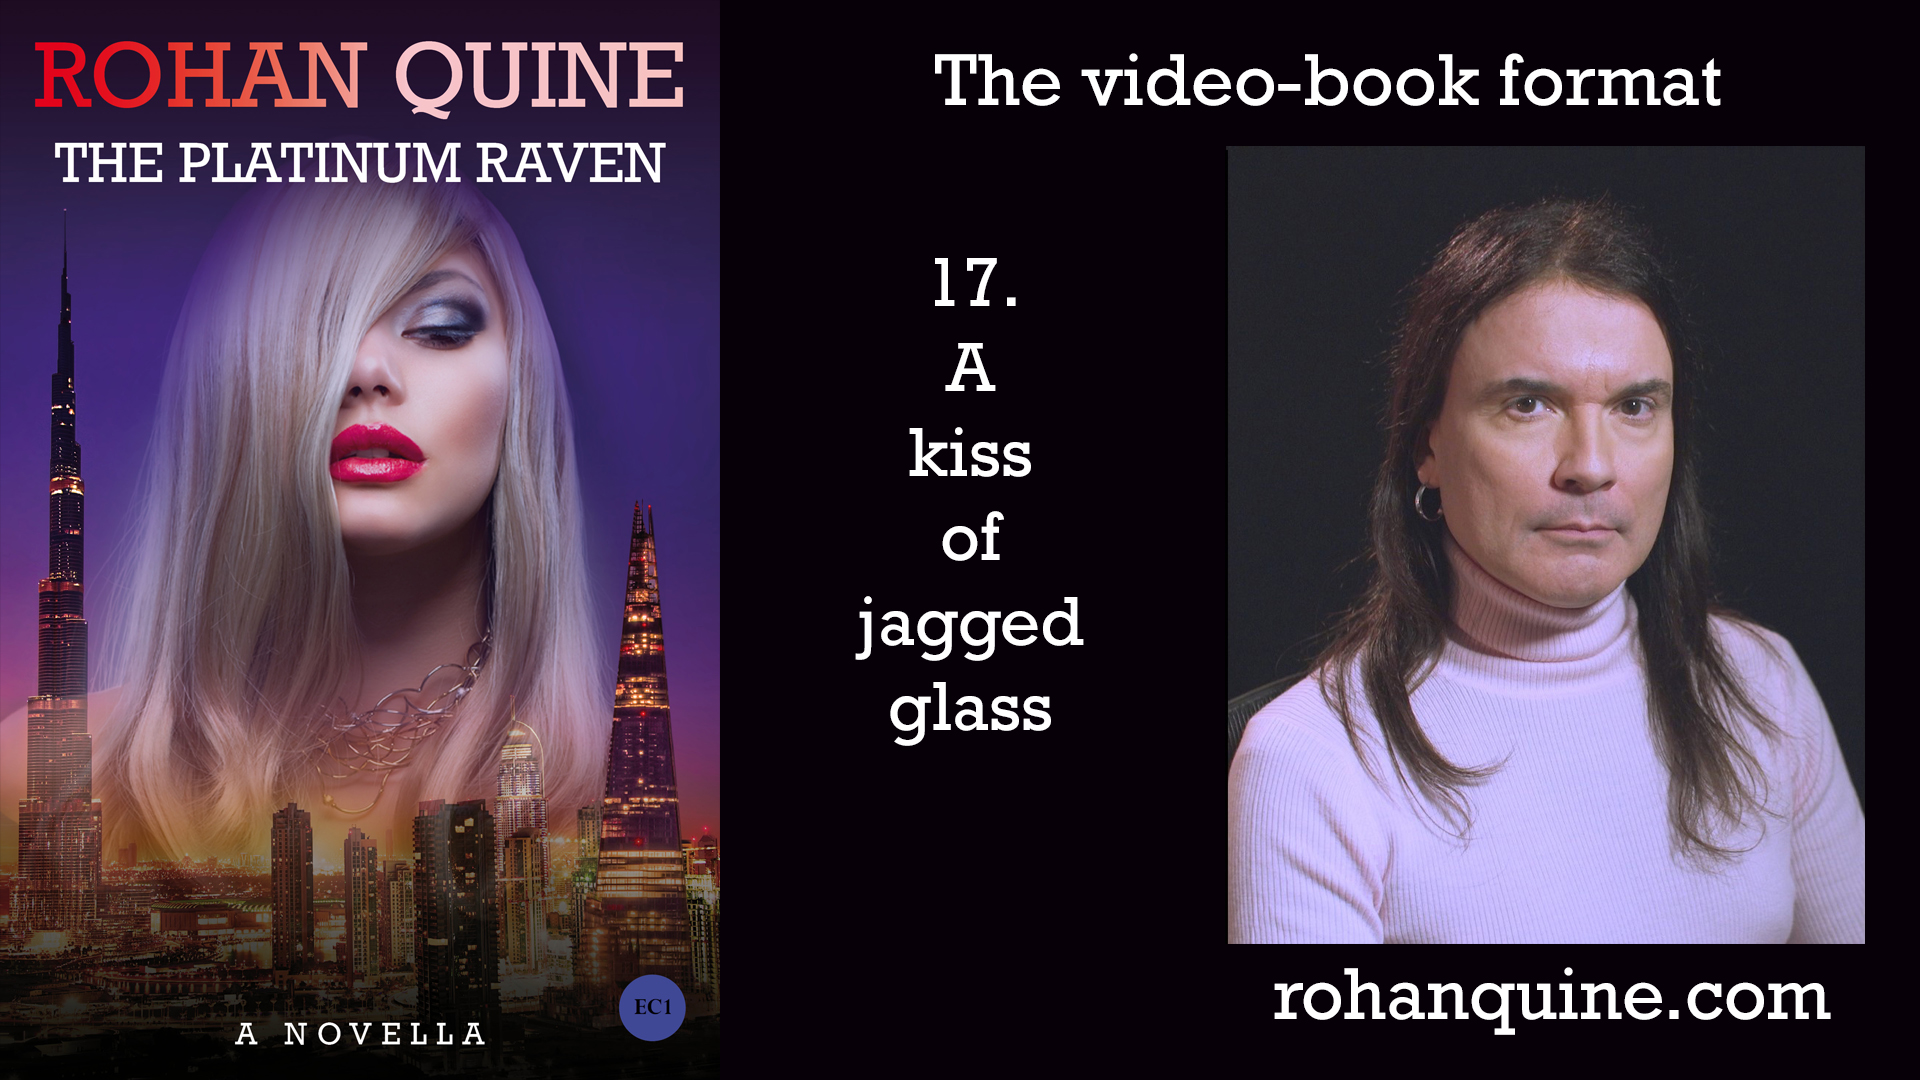 THE PLATINUM RAVEN by Rohan Quine - video-book format - chapter 17